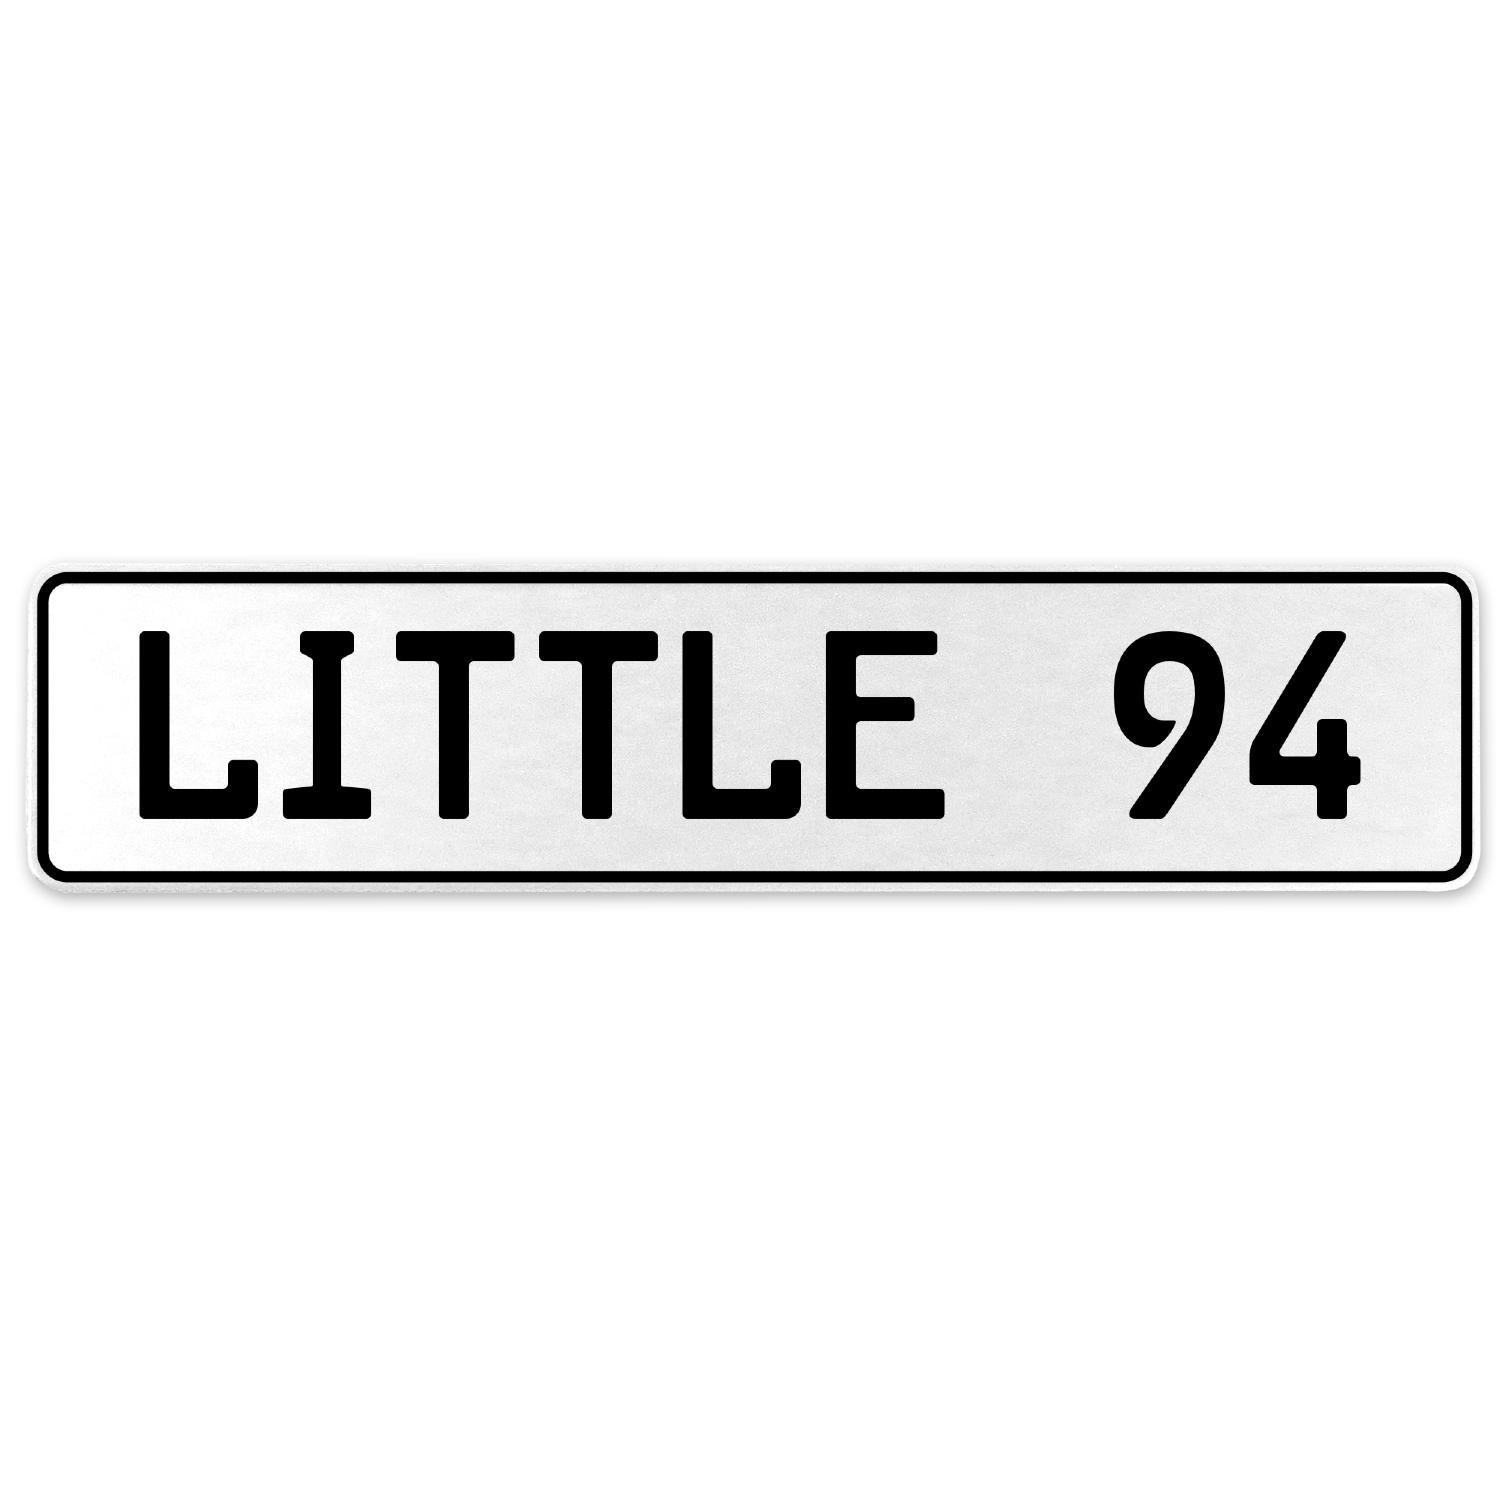 Vintage Parts 556374 Little 94 White Stamped Aluminum European License Plate